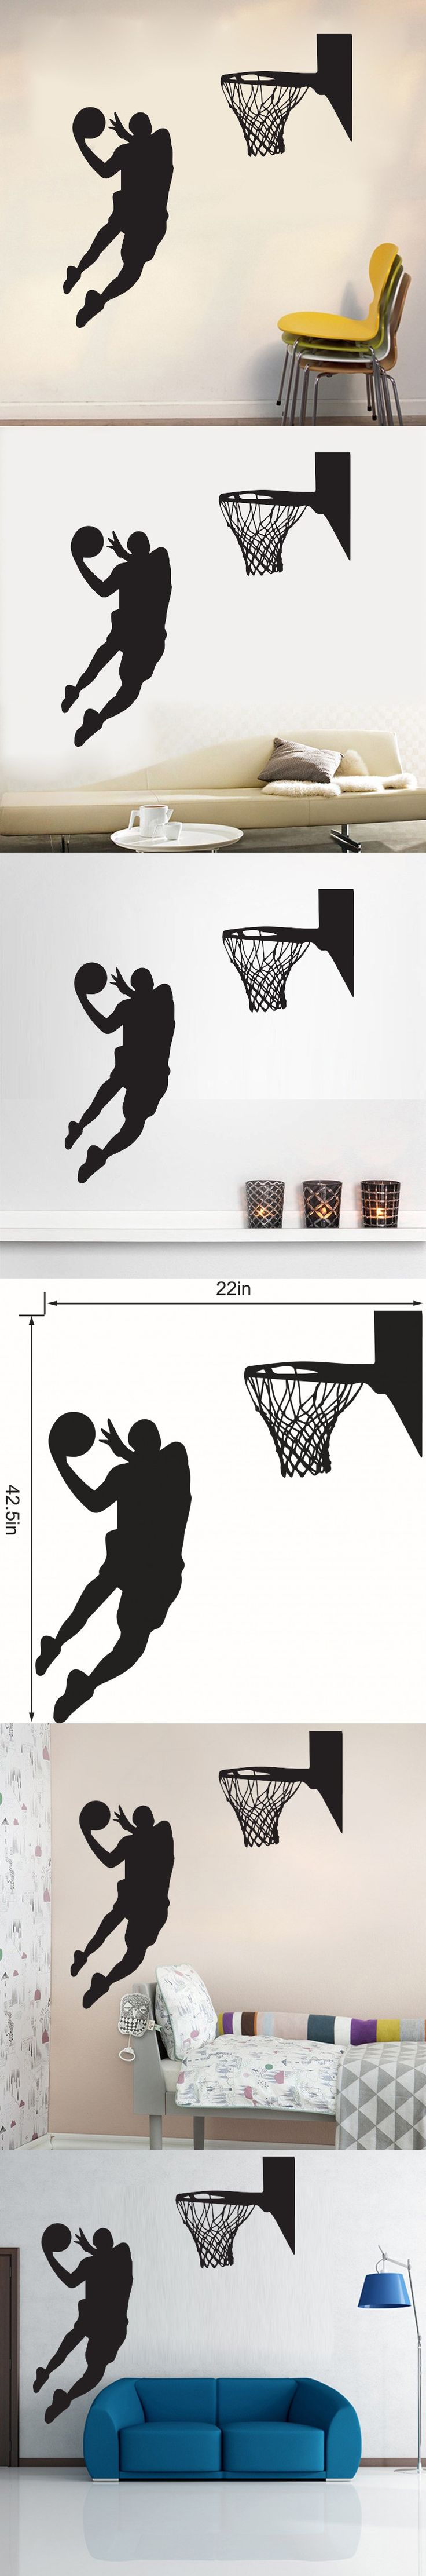 19 best gilles sticker basket images on pinterest wall decal cool basketball sport theme wall sticker for boys living room home decor waterproof pvc wall stickers for kids rooms